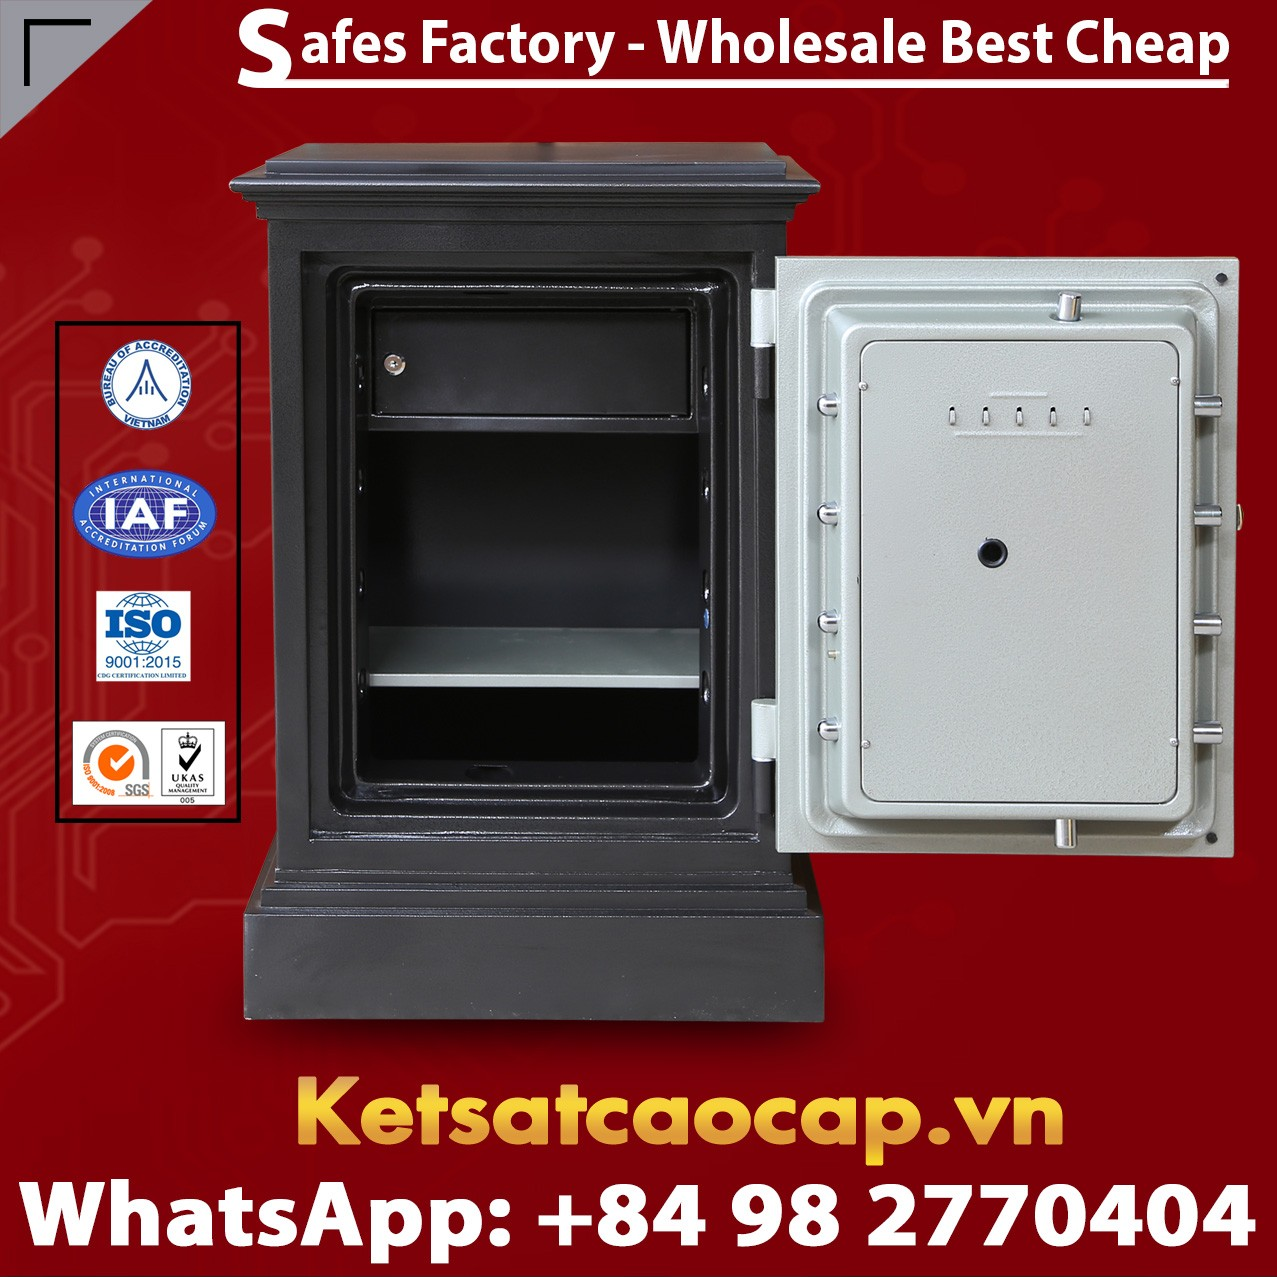 Home Safe Wholesale Suppliers